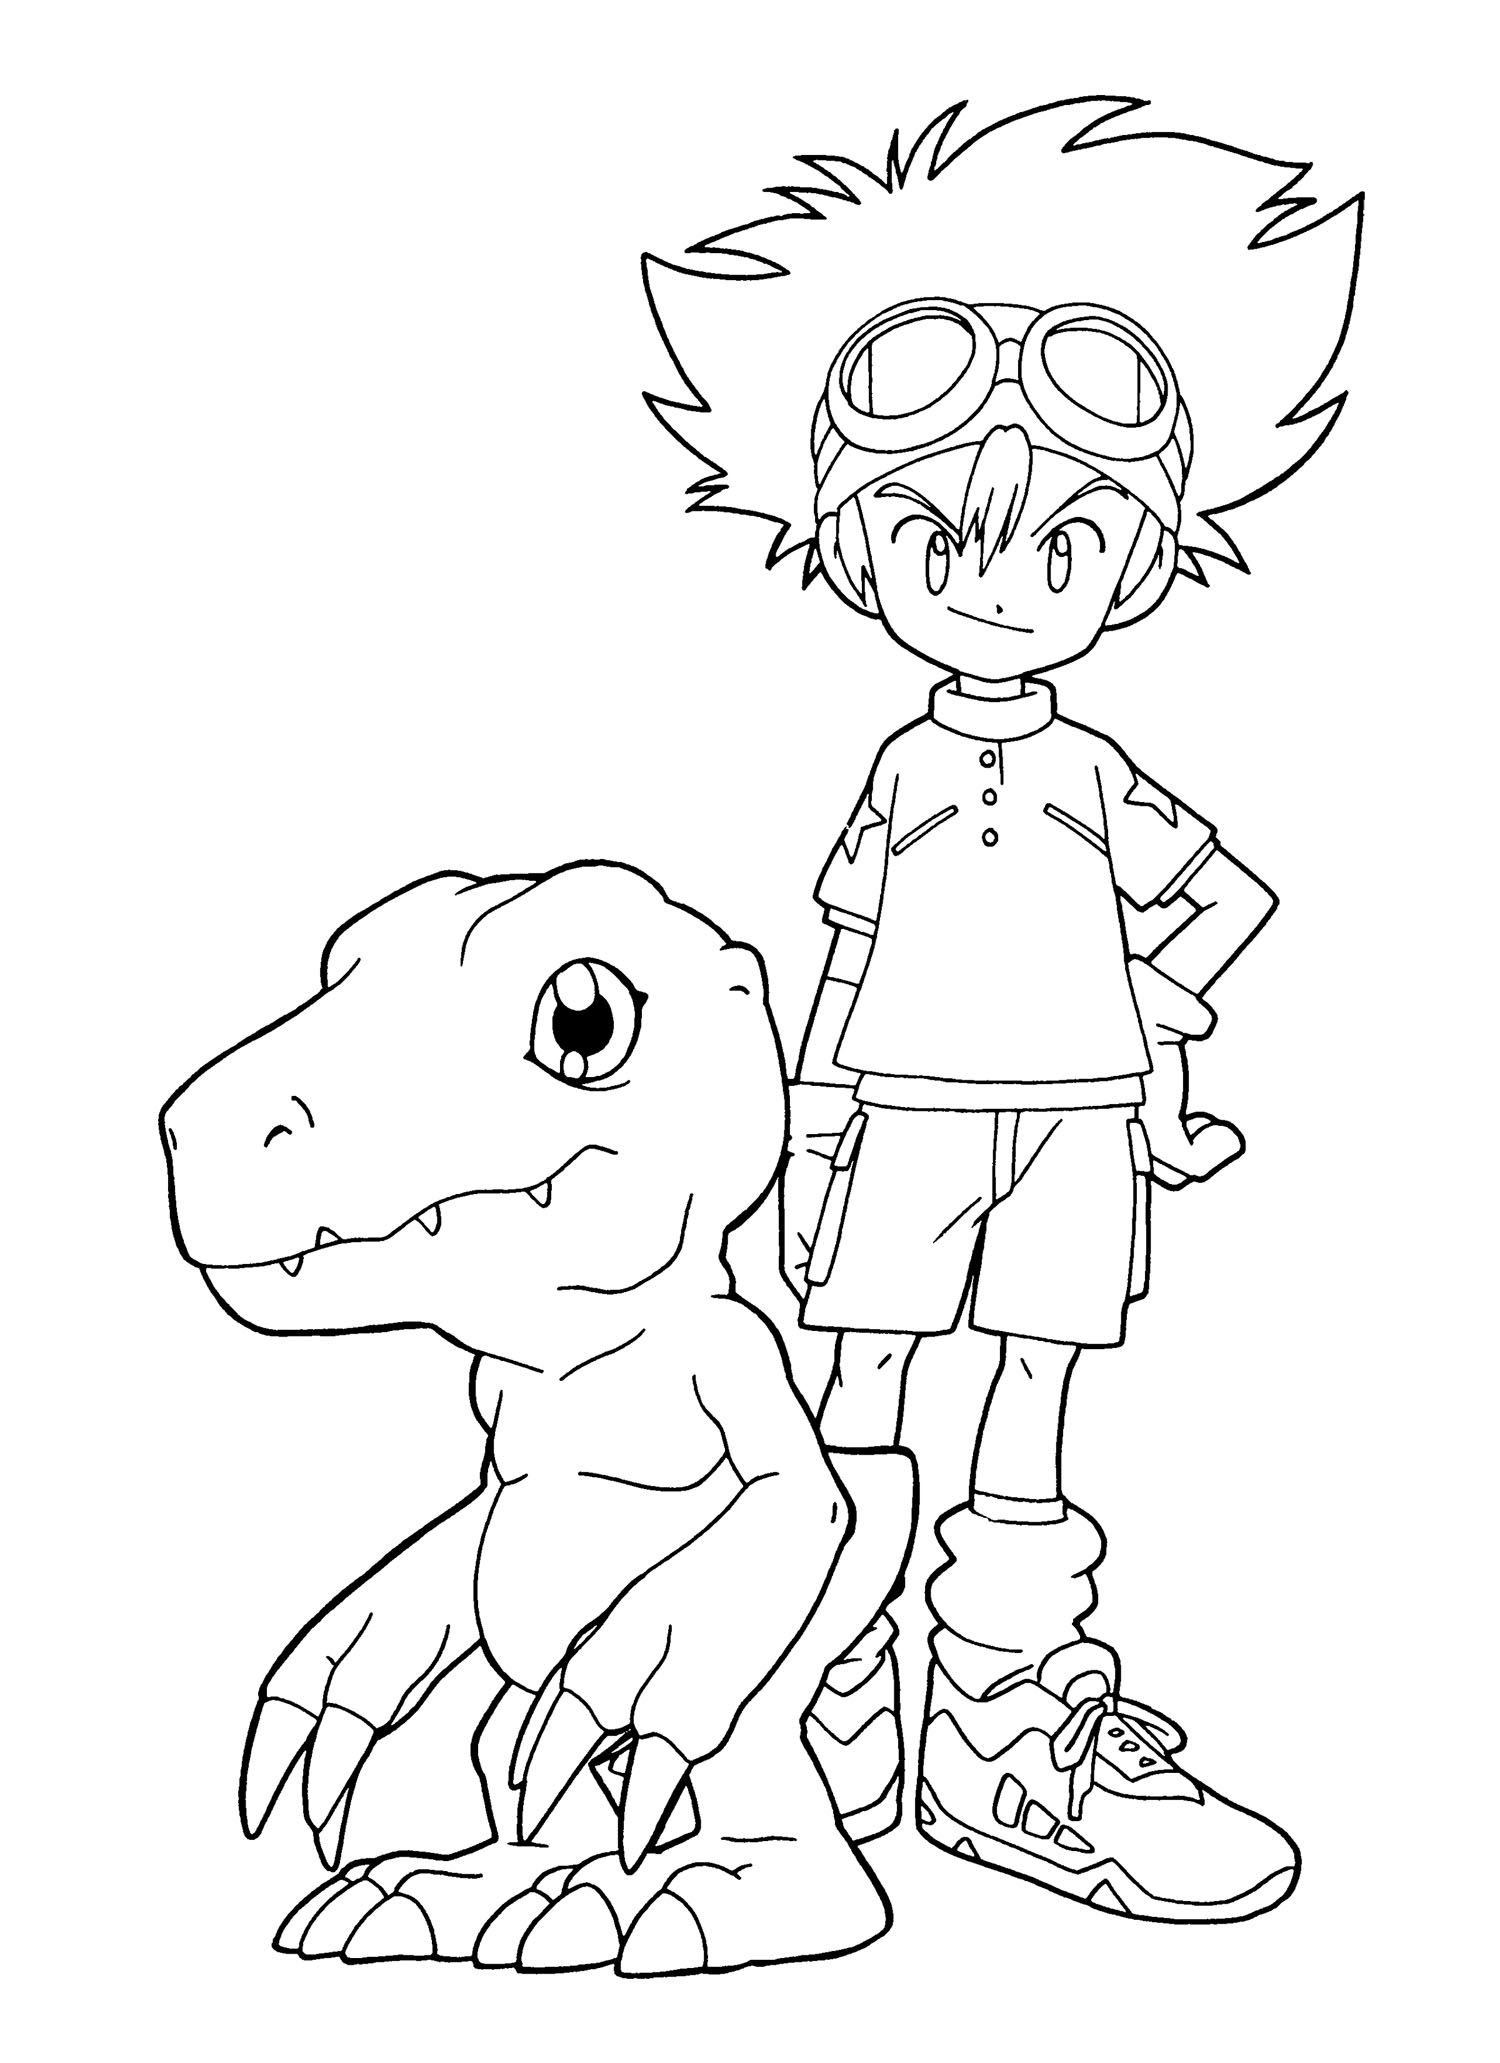 Taichi and agumon coloring page